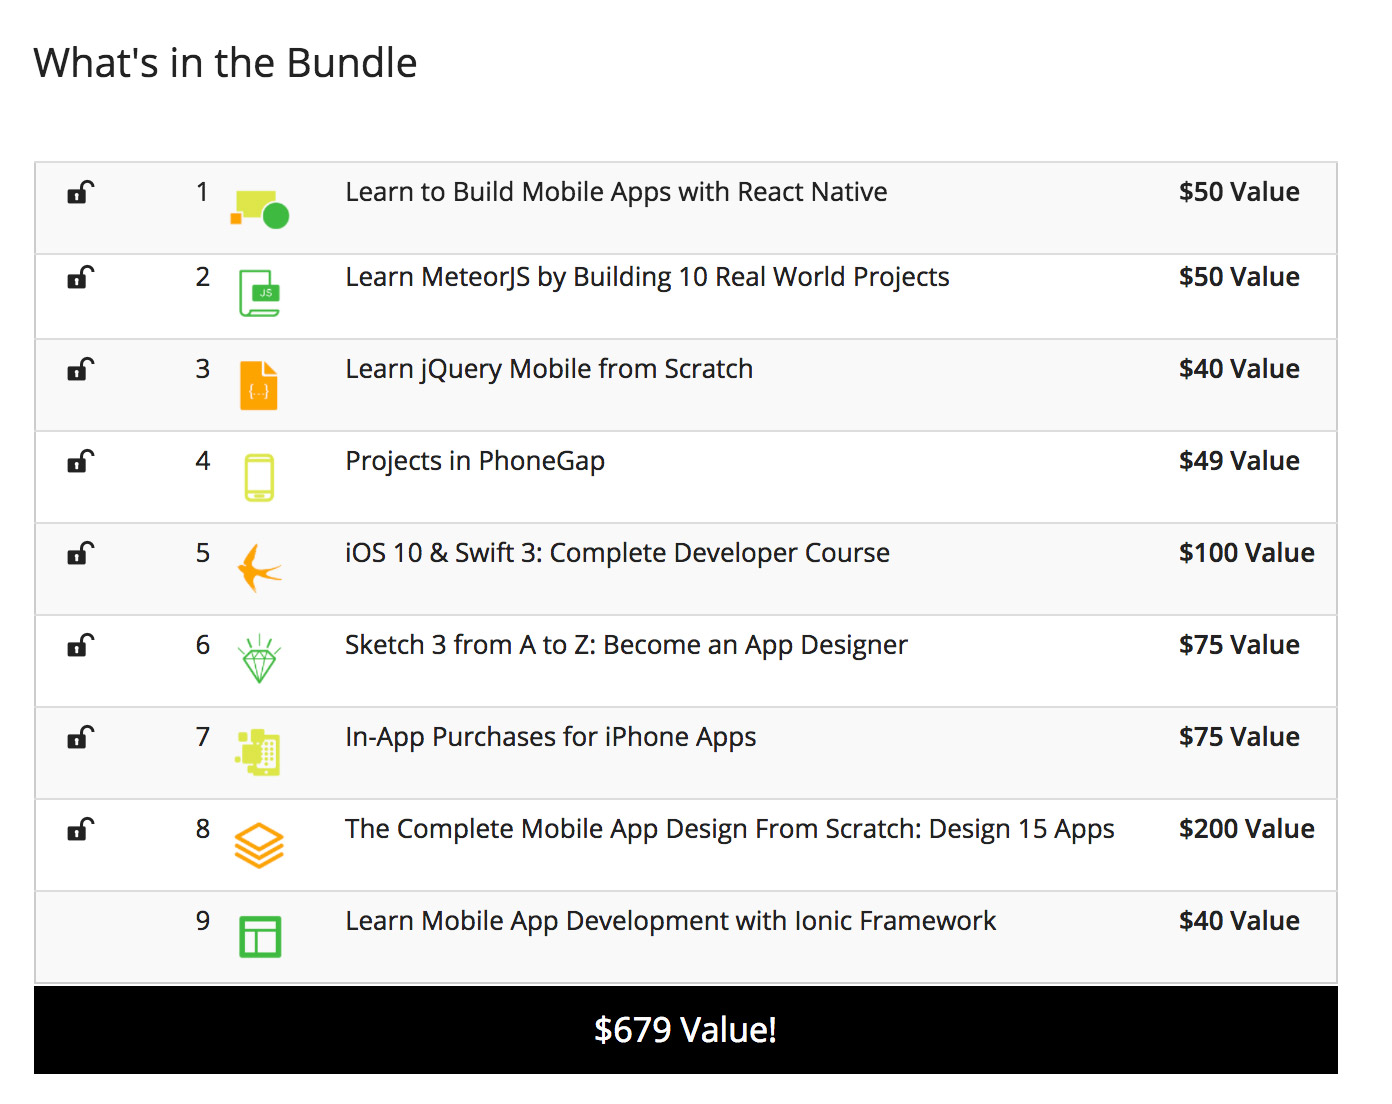 Deal: Learn to Build Mobile Apps